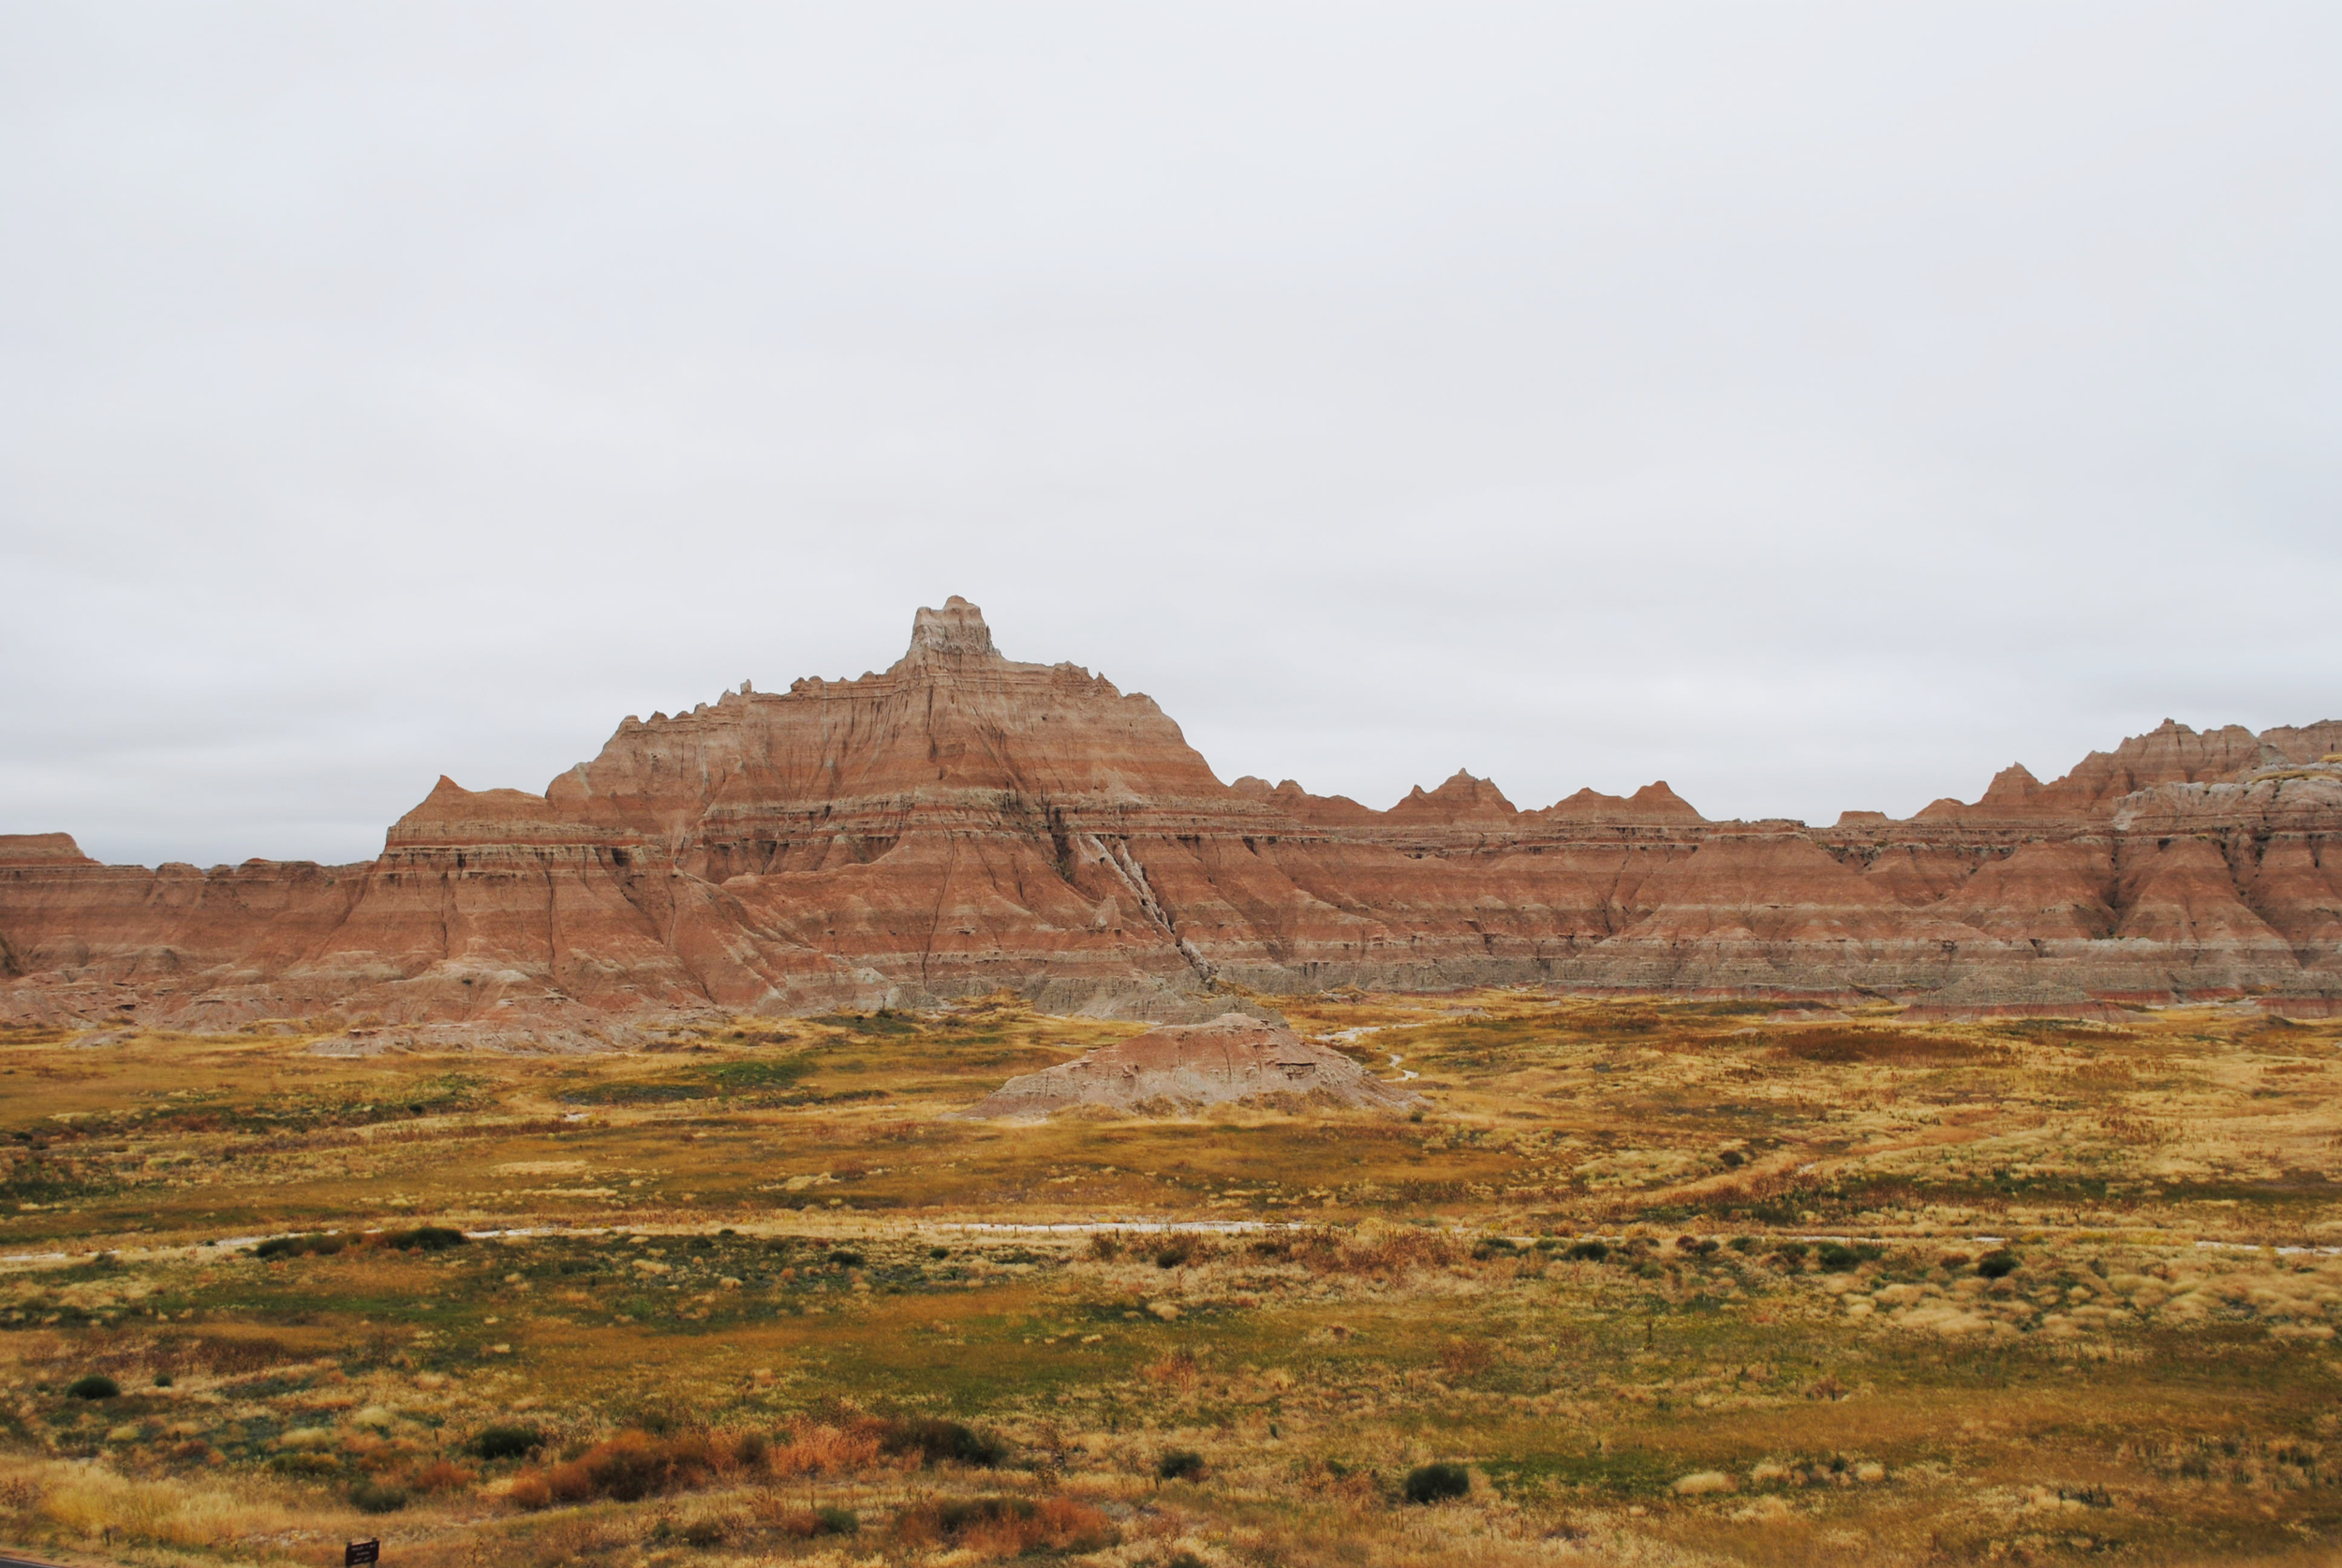 HWY 240 Loop Road weaves through the striated features of the Badlands formations and the mixed grass prairie.